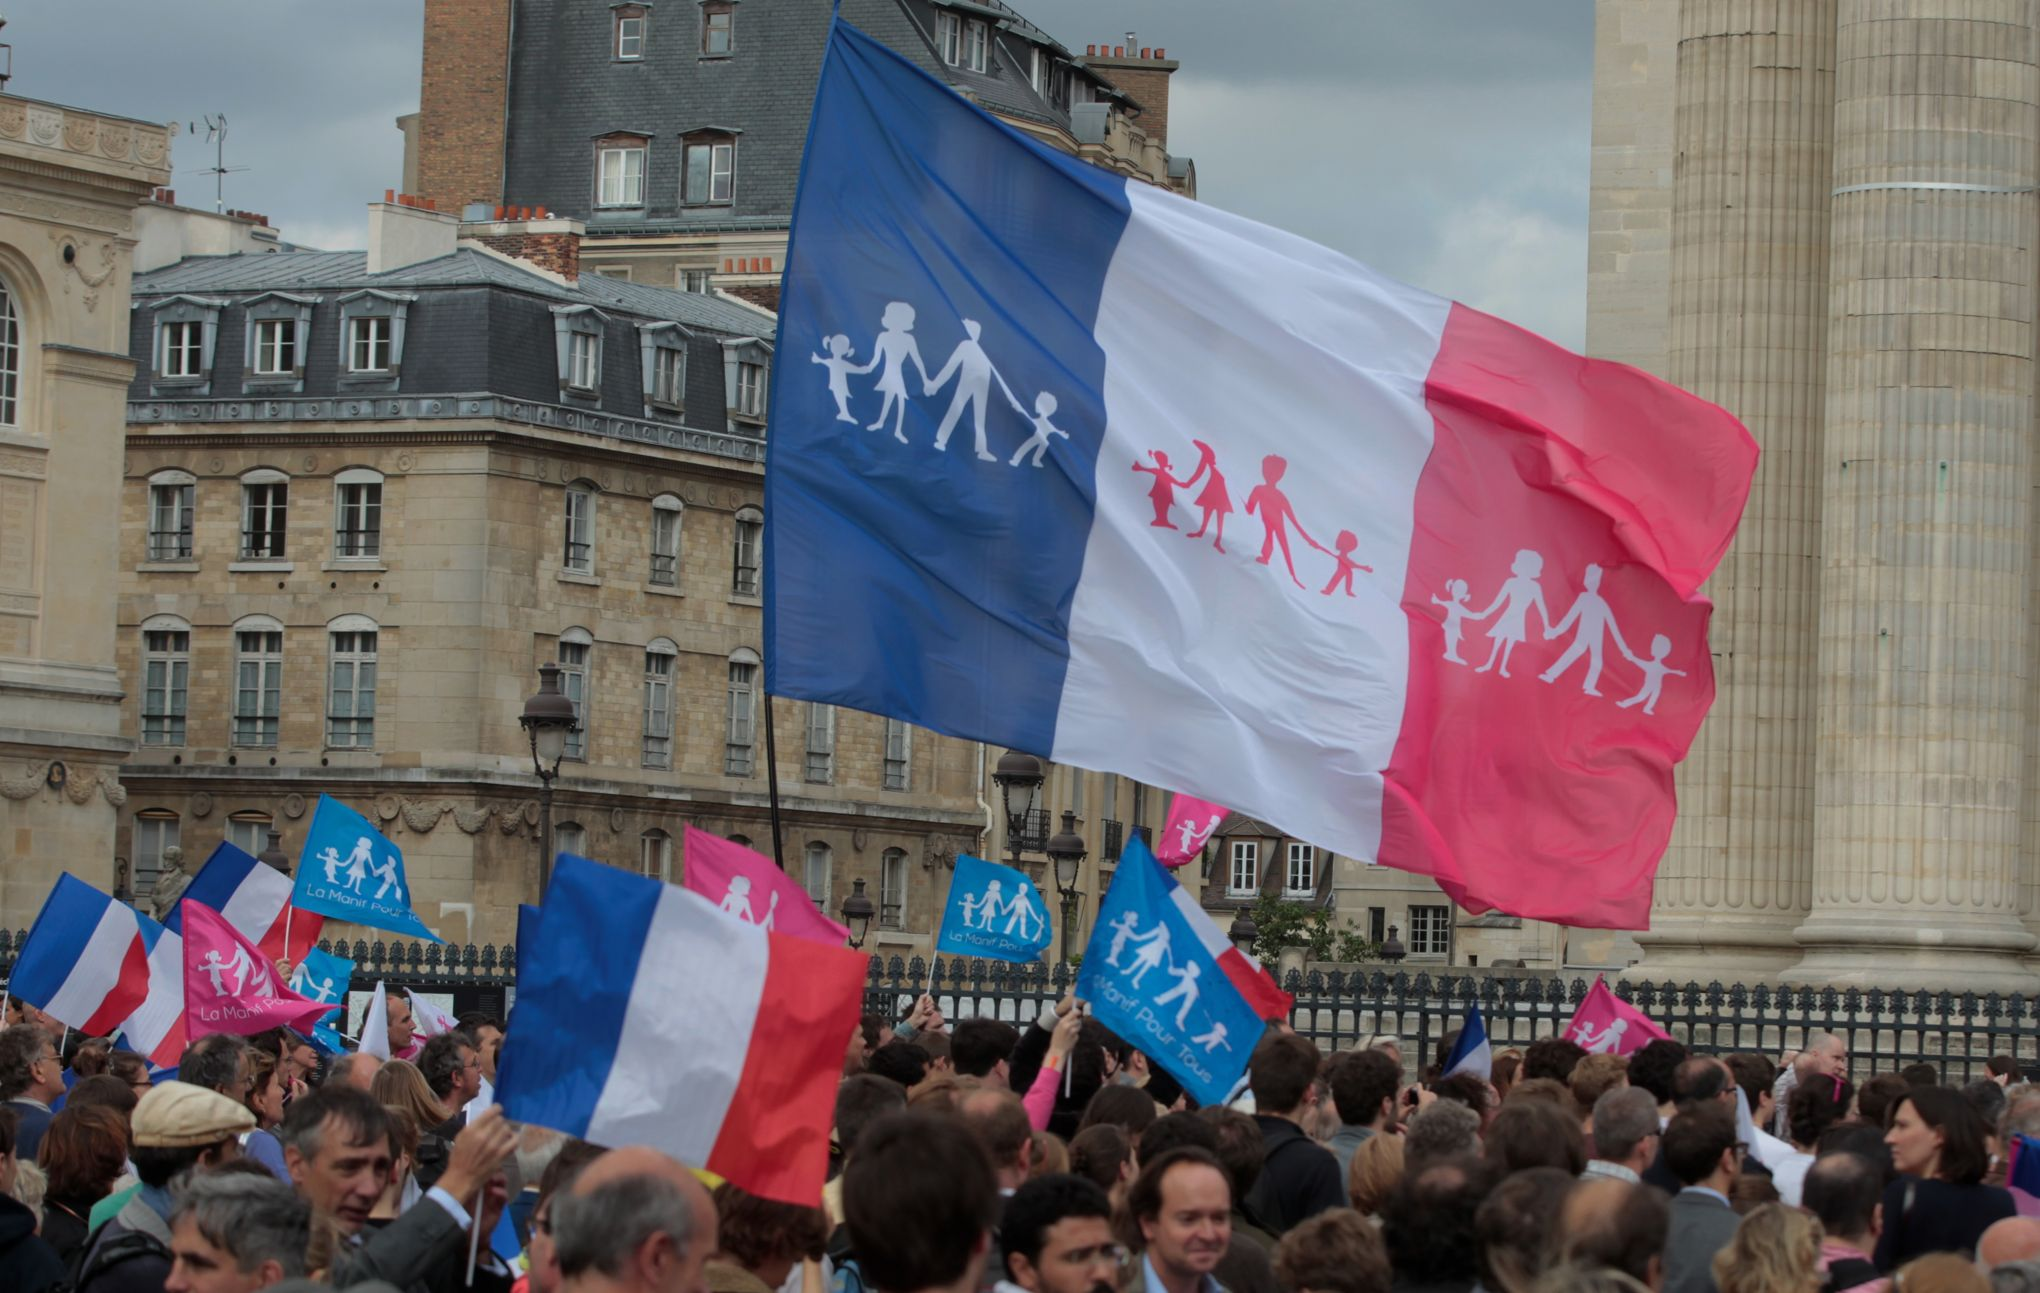 Les promesses de dieu pour le marriage homosexual marriage